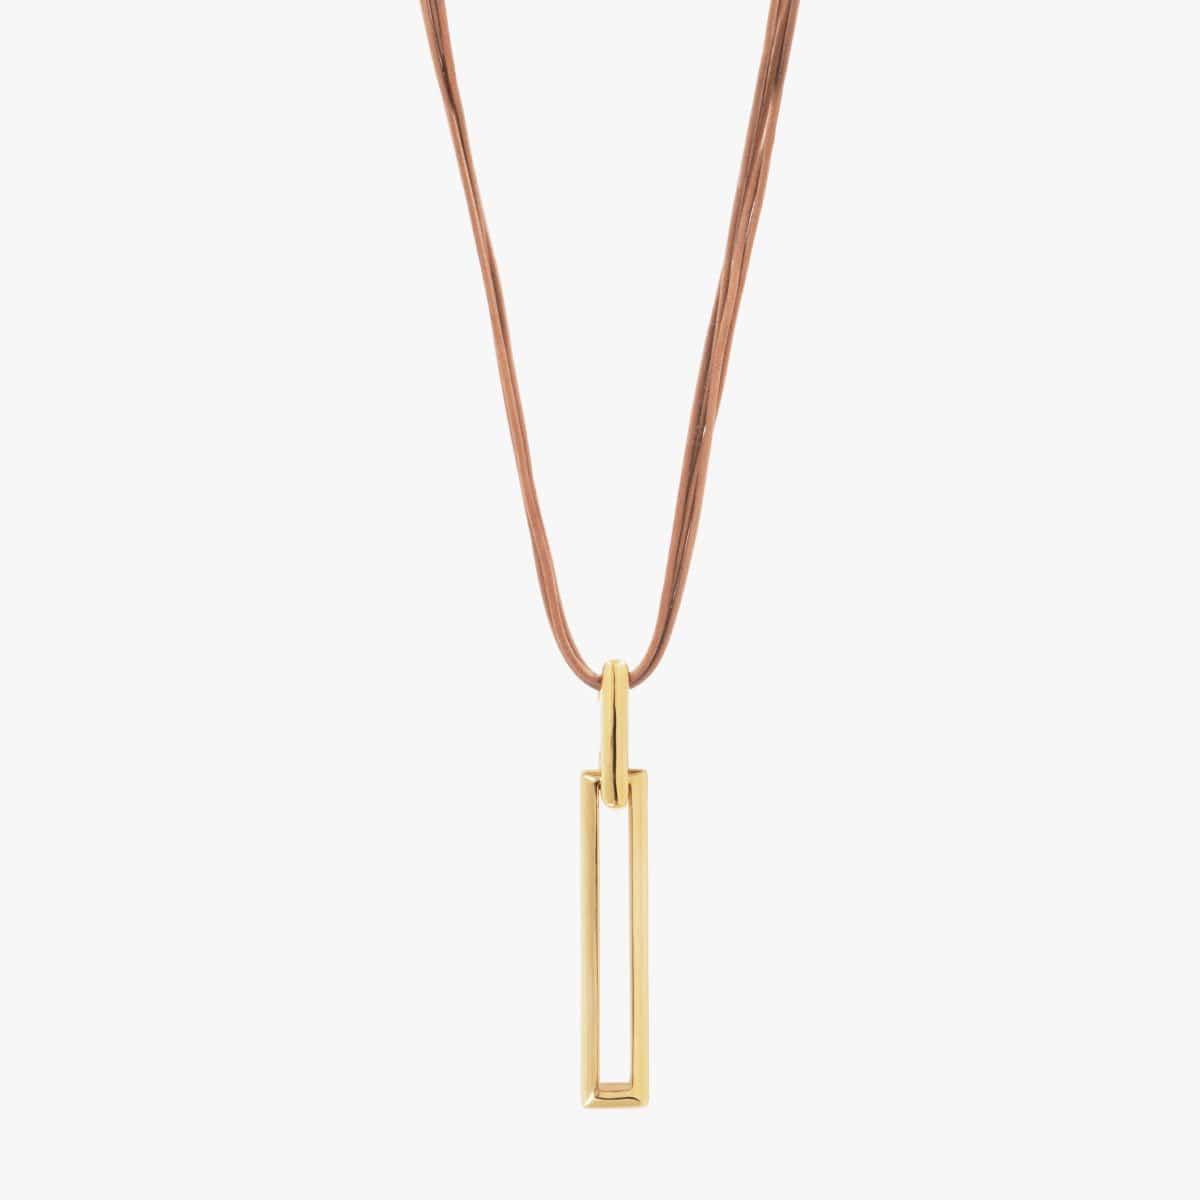 Gold Plated Leather Necklace - N0072ORC-CXC-Renee Taylor Gallery